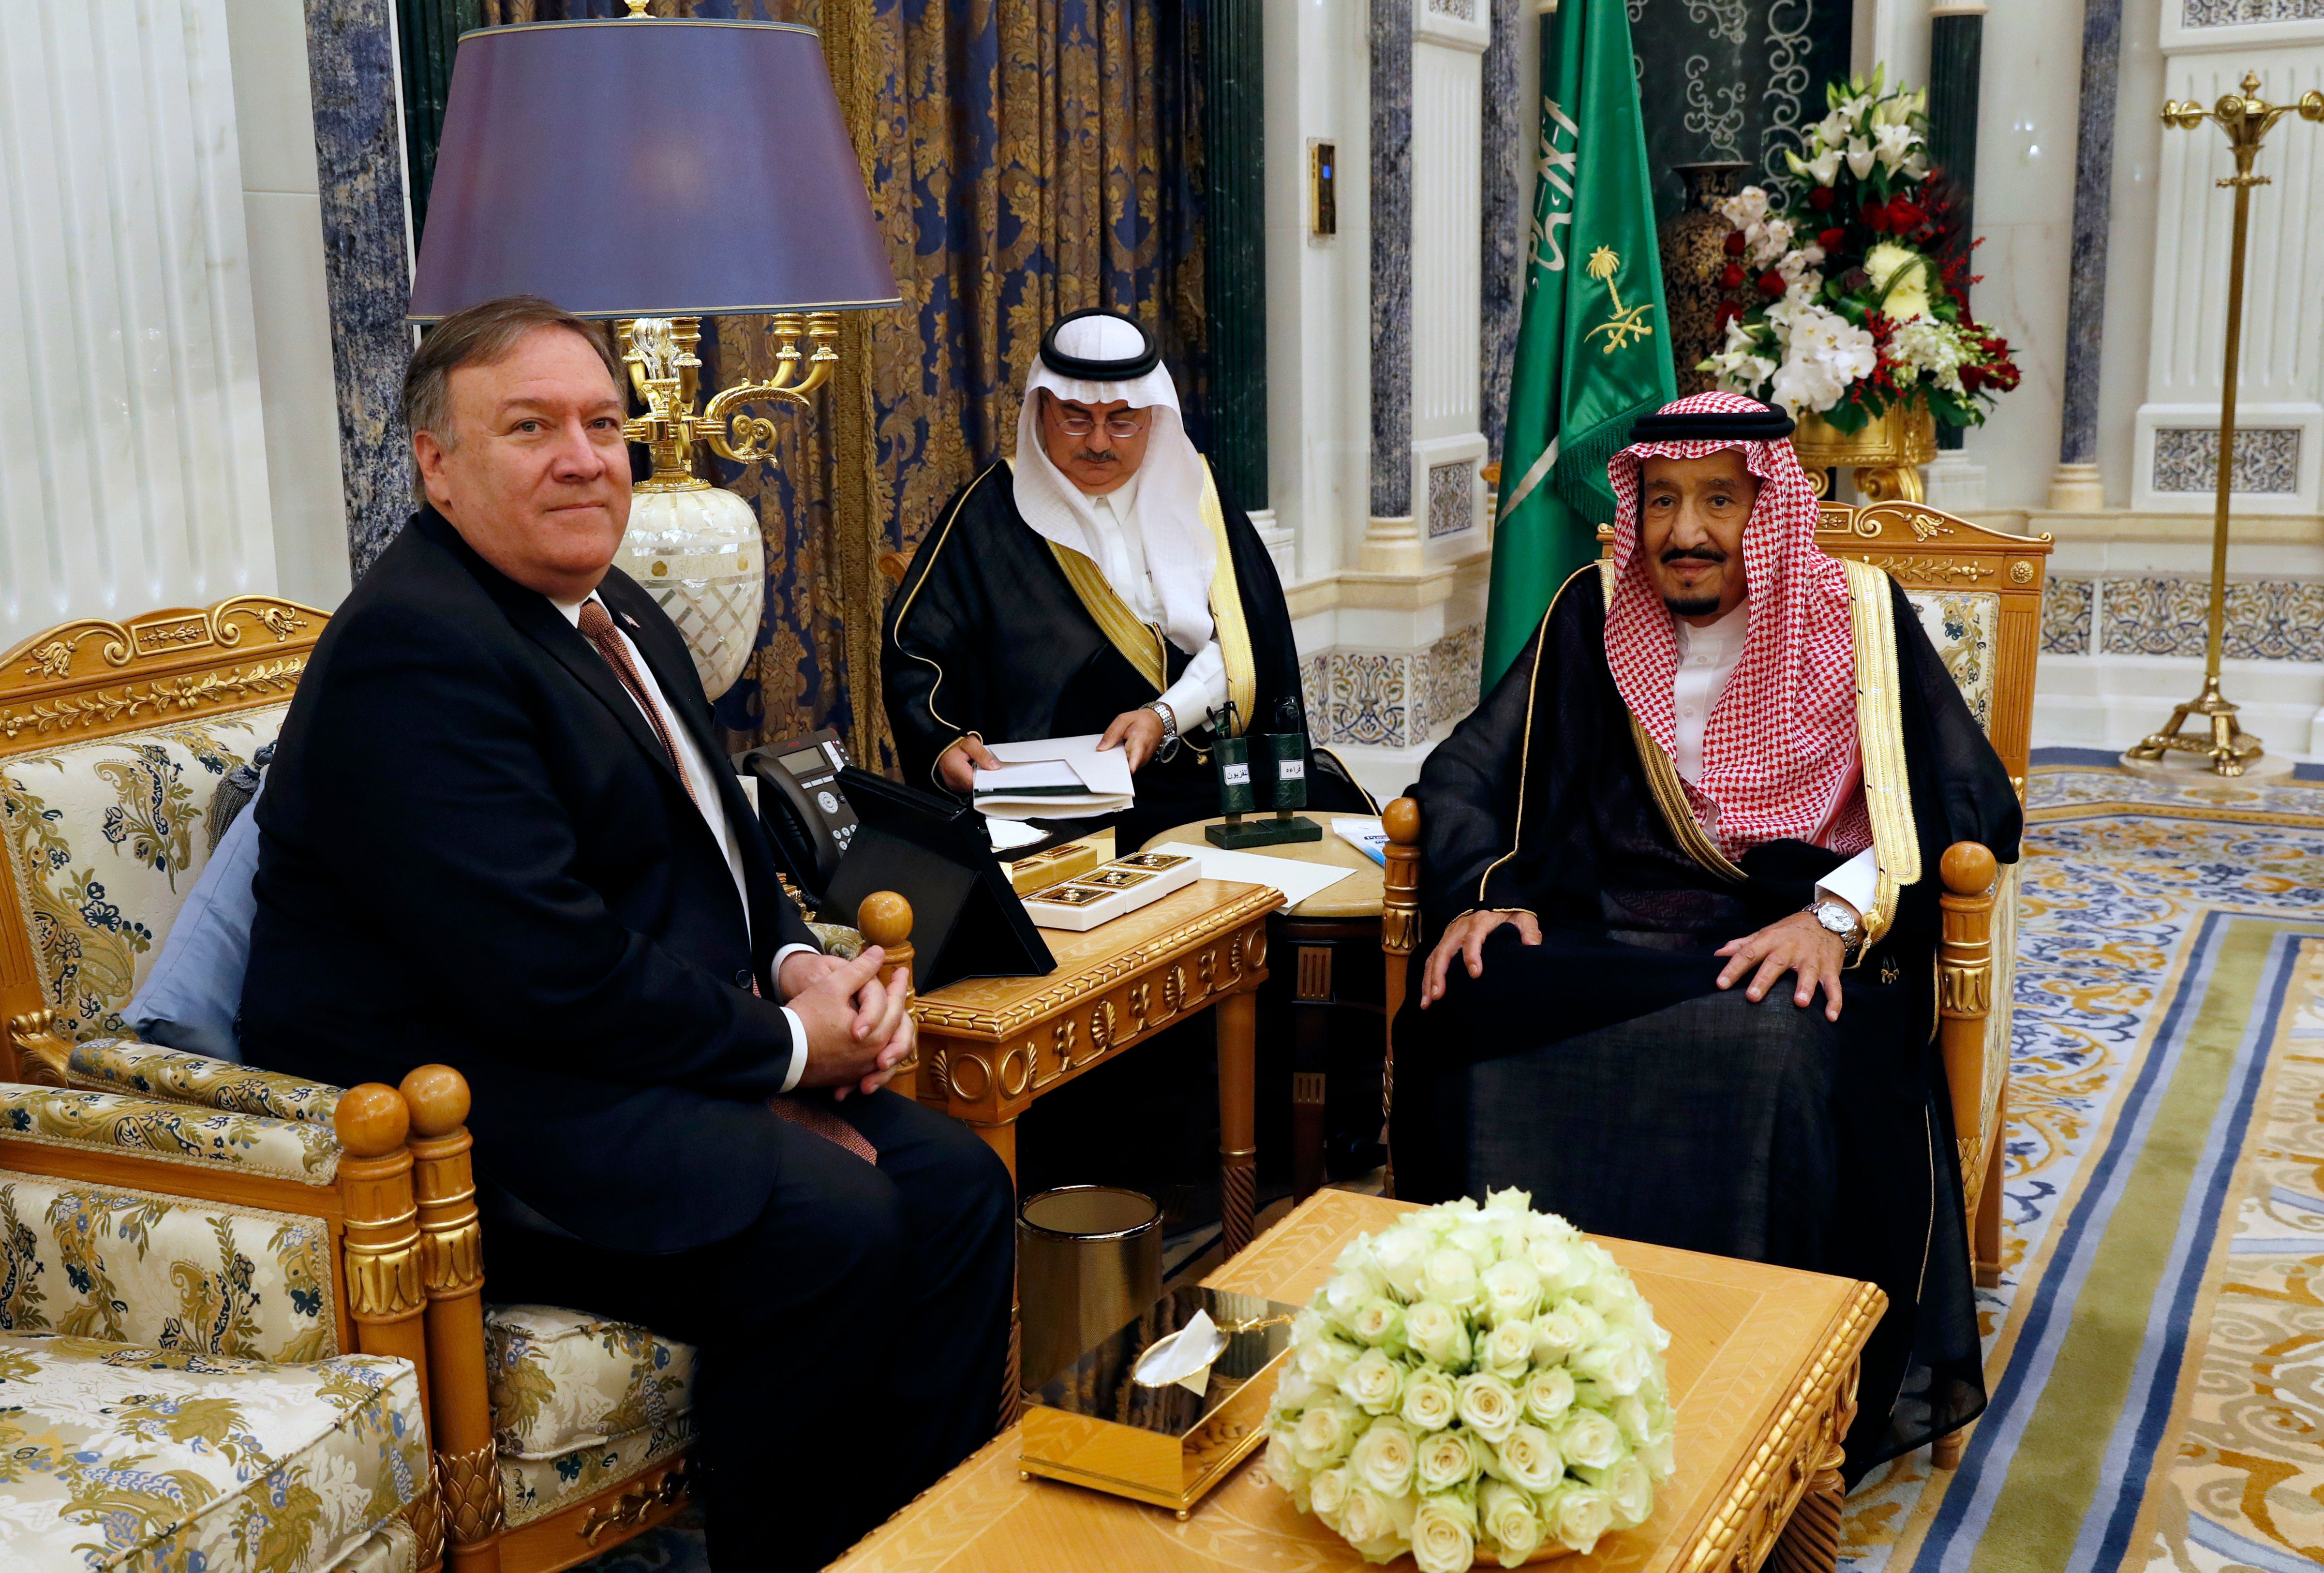 Saudi Arabia's King Salman (R) meets with US Secretary of State Mike Pompeo in Riyadh on October 16, 2018. - Pompeo arrived in the Saudi capital for talks with King Salman on what happened to missing journalist Jamal Khashoggi. (Photo by LEAH MILLIS / POOL / AFP) (Photo credit should read LEAH MILLIS/AFP/Getty Images)